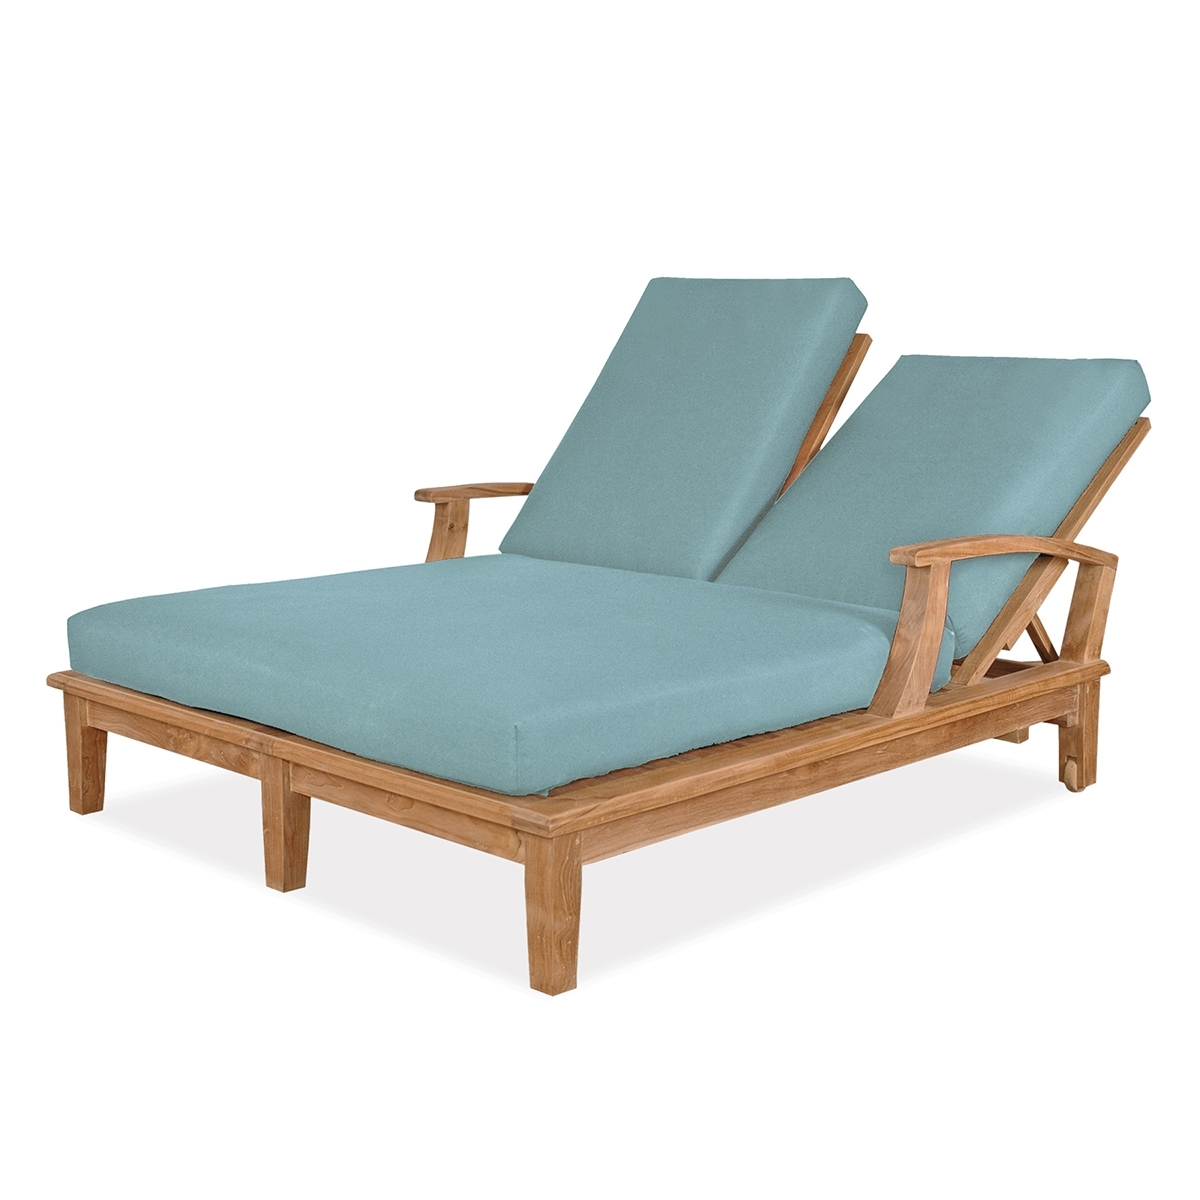 Most Popular Sunbrella Chaise Lounges Pertaining To Double Chaise Lounge (View 6 of 15)